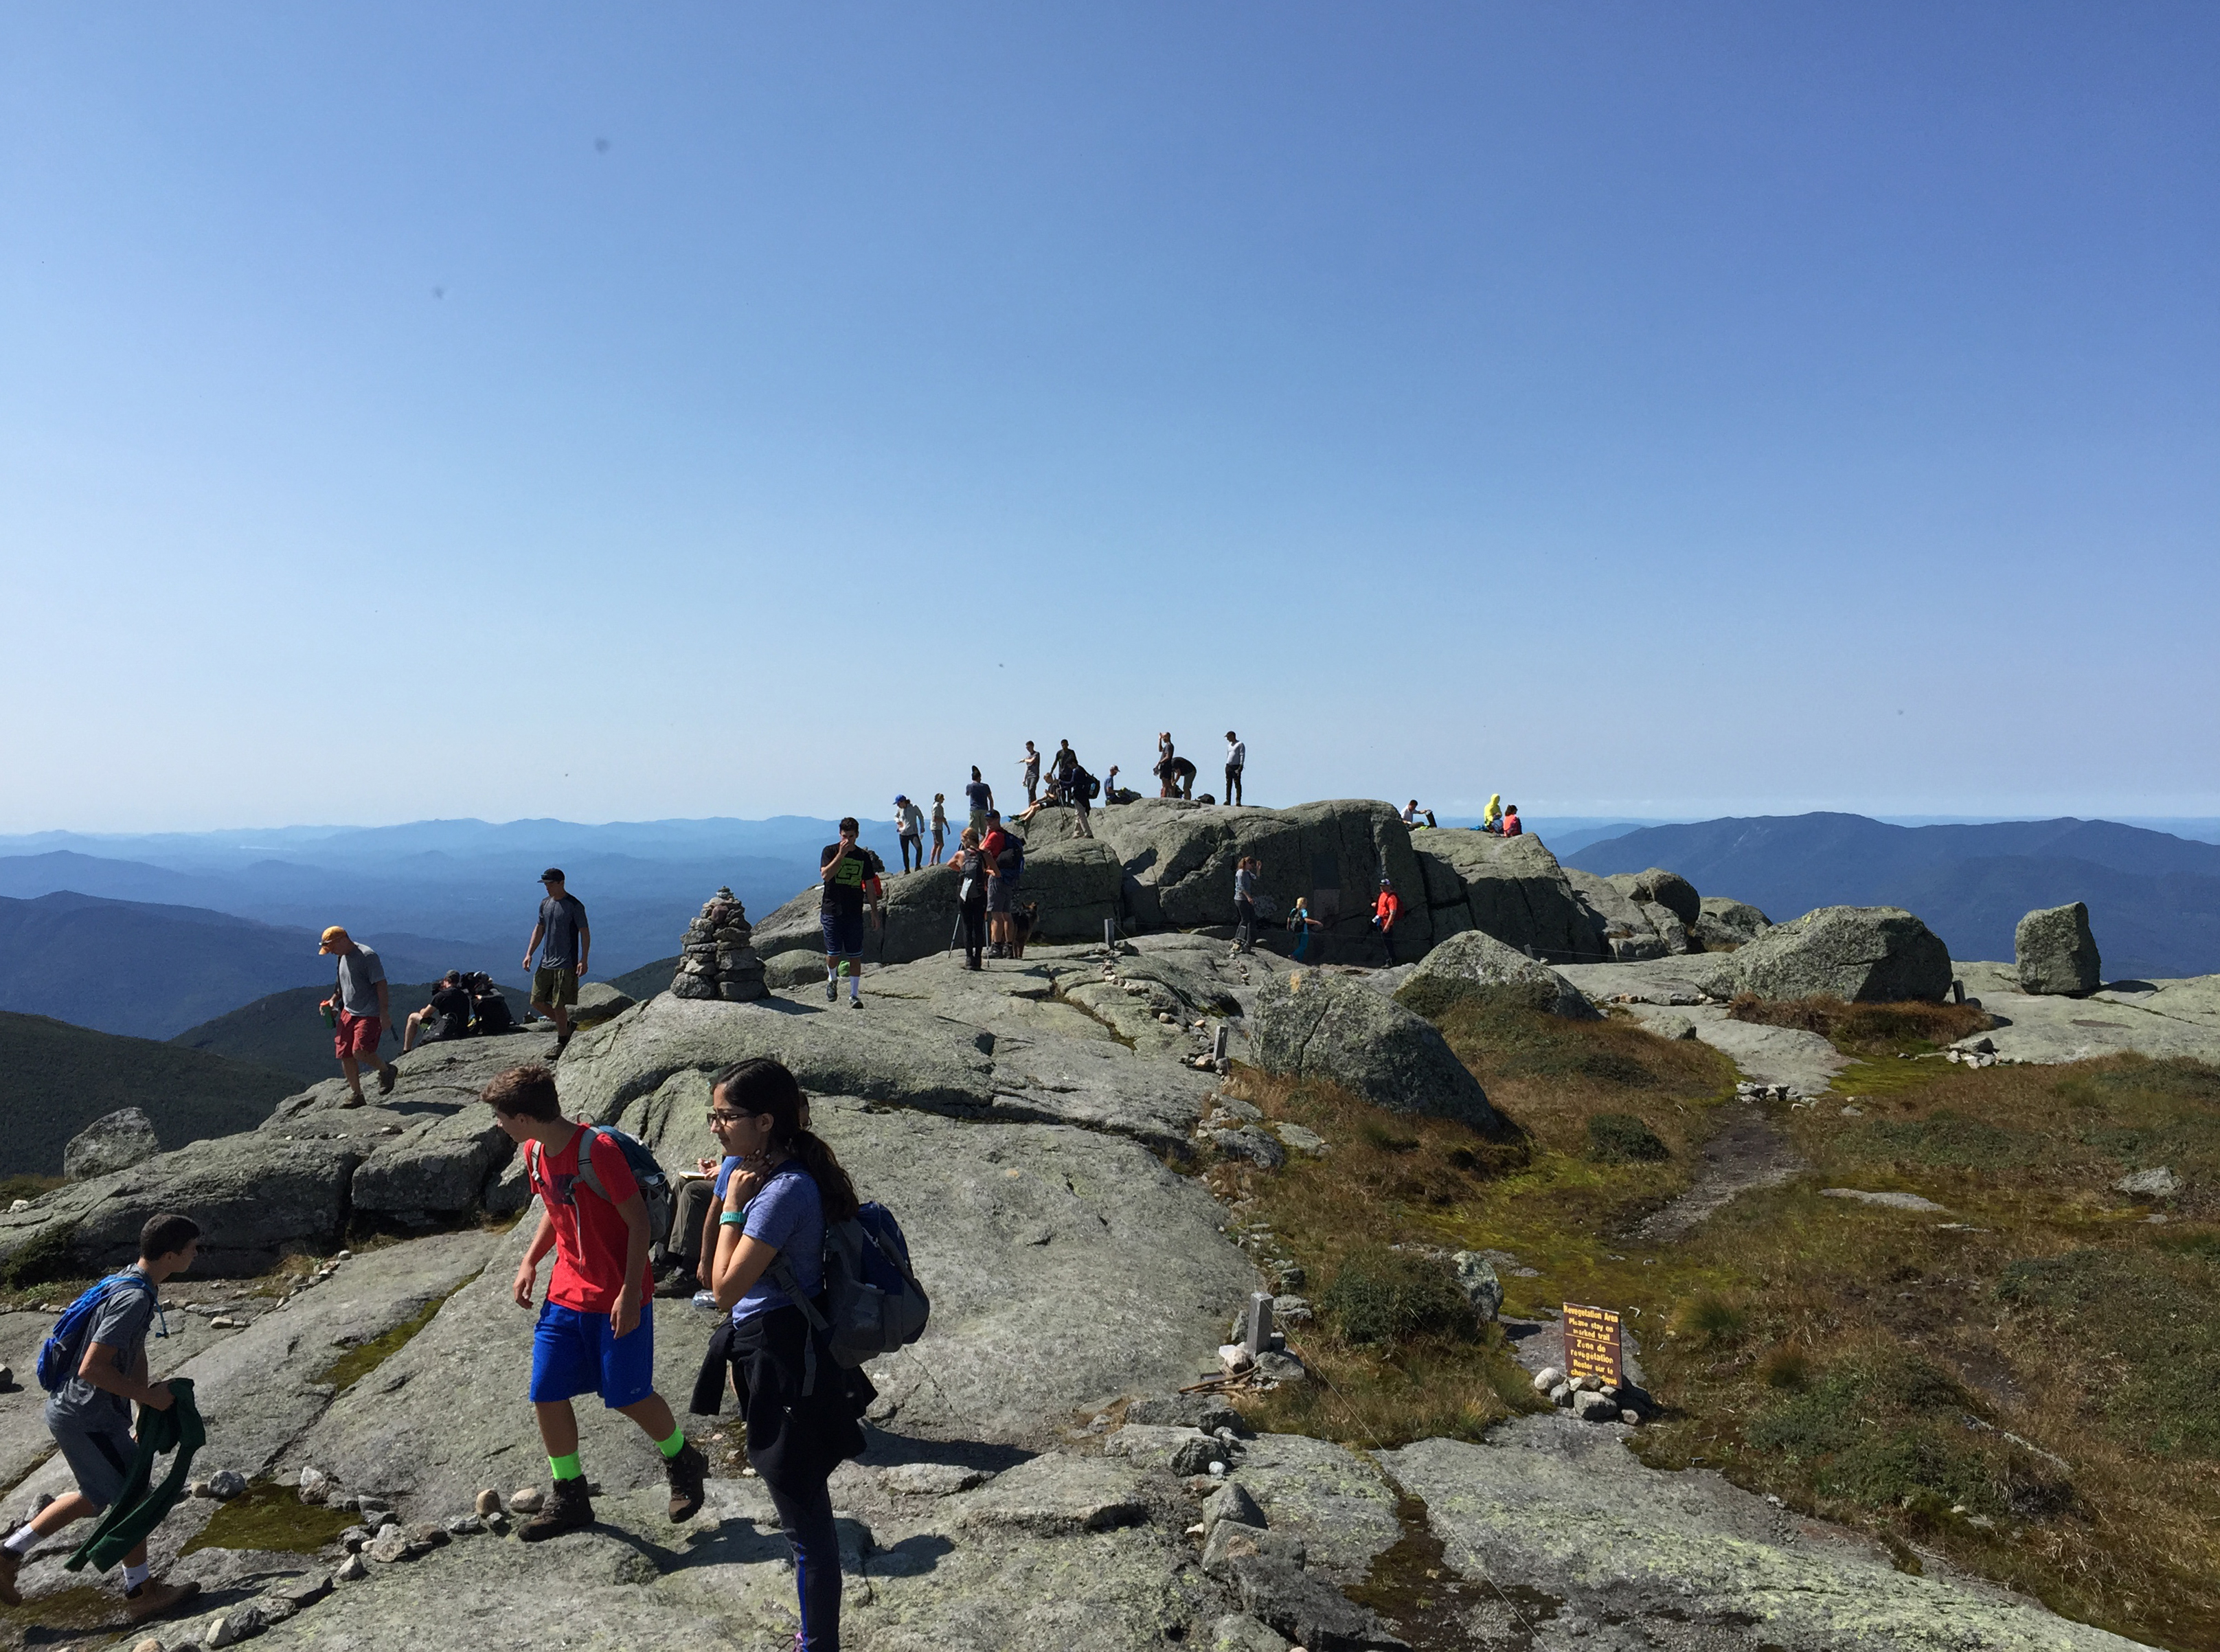 New york essex county keene - File 2016 09 04 11 58 54 The Summit Of Mount Marcy At